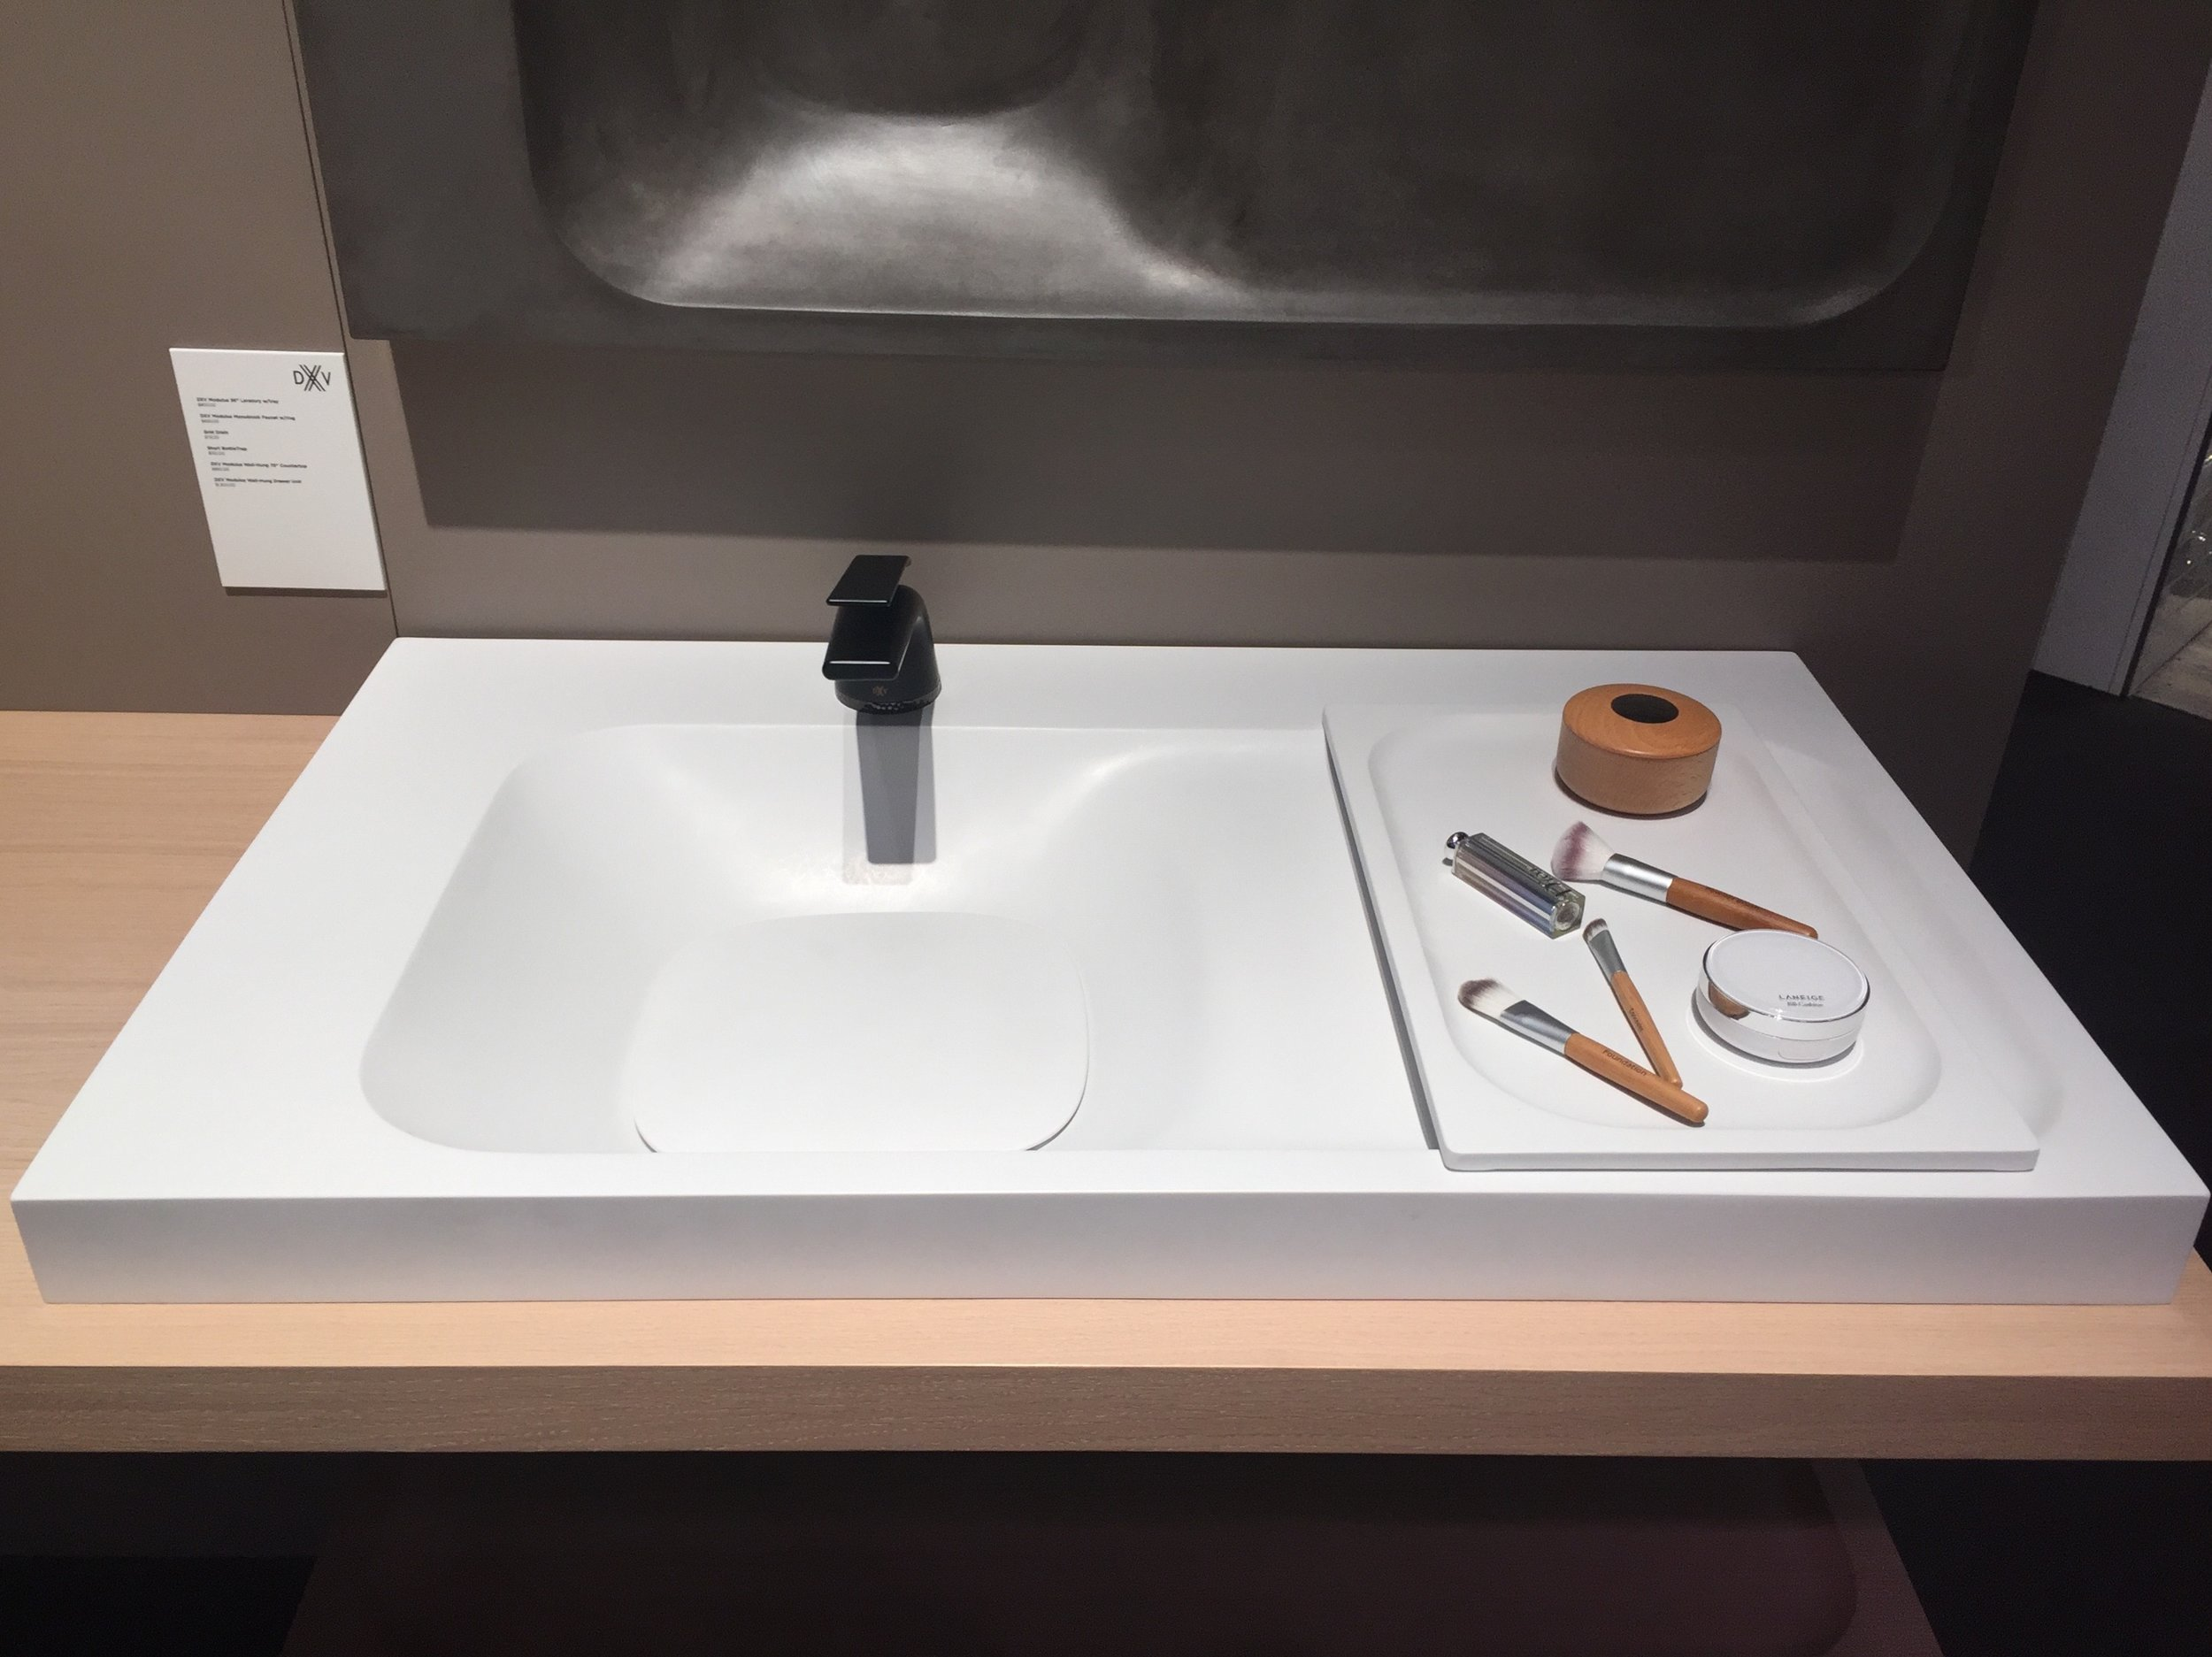 The sink includes this handy tray that acts as a dry zone without requiring additional counter space. Love the large drain cover.